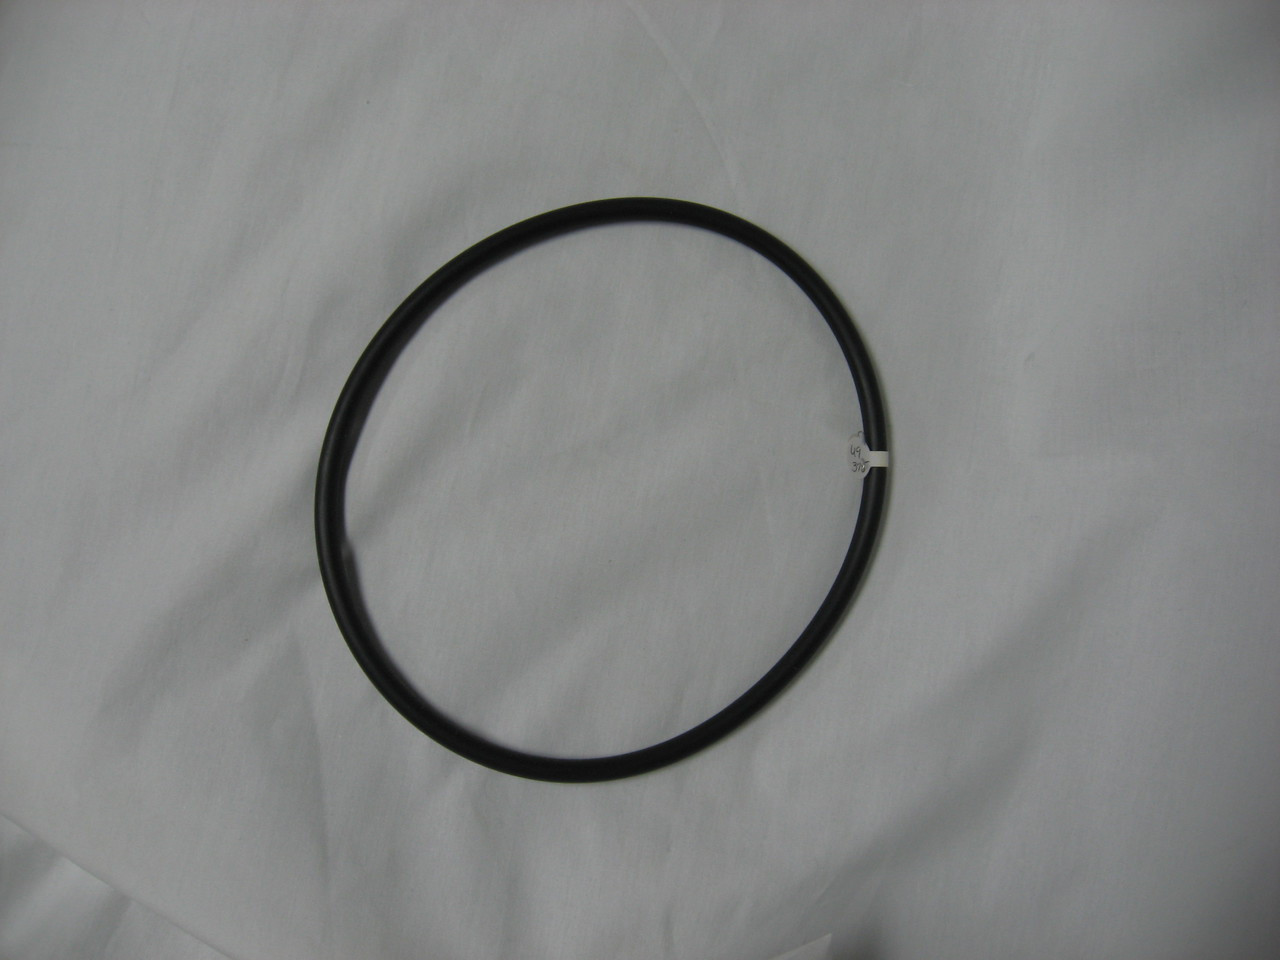 Glas Pool O Ring For Pump Lid For Sta Rite Duraglas Max E Glas Or Jwp Pool Pump